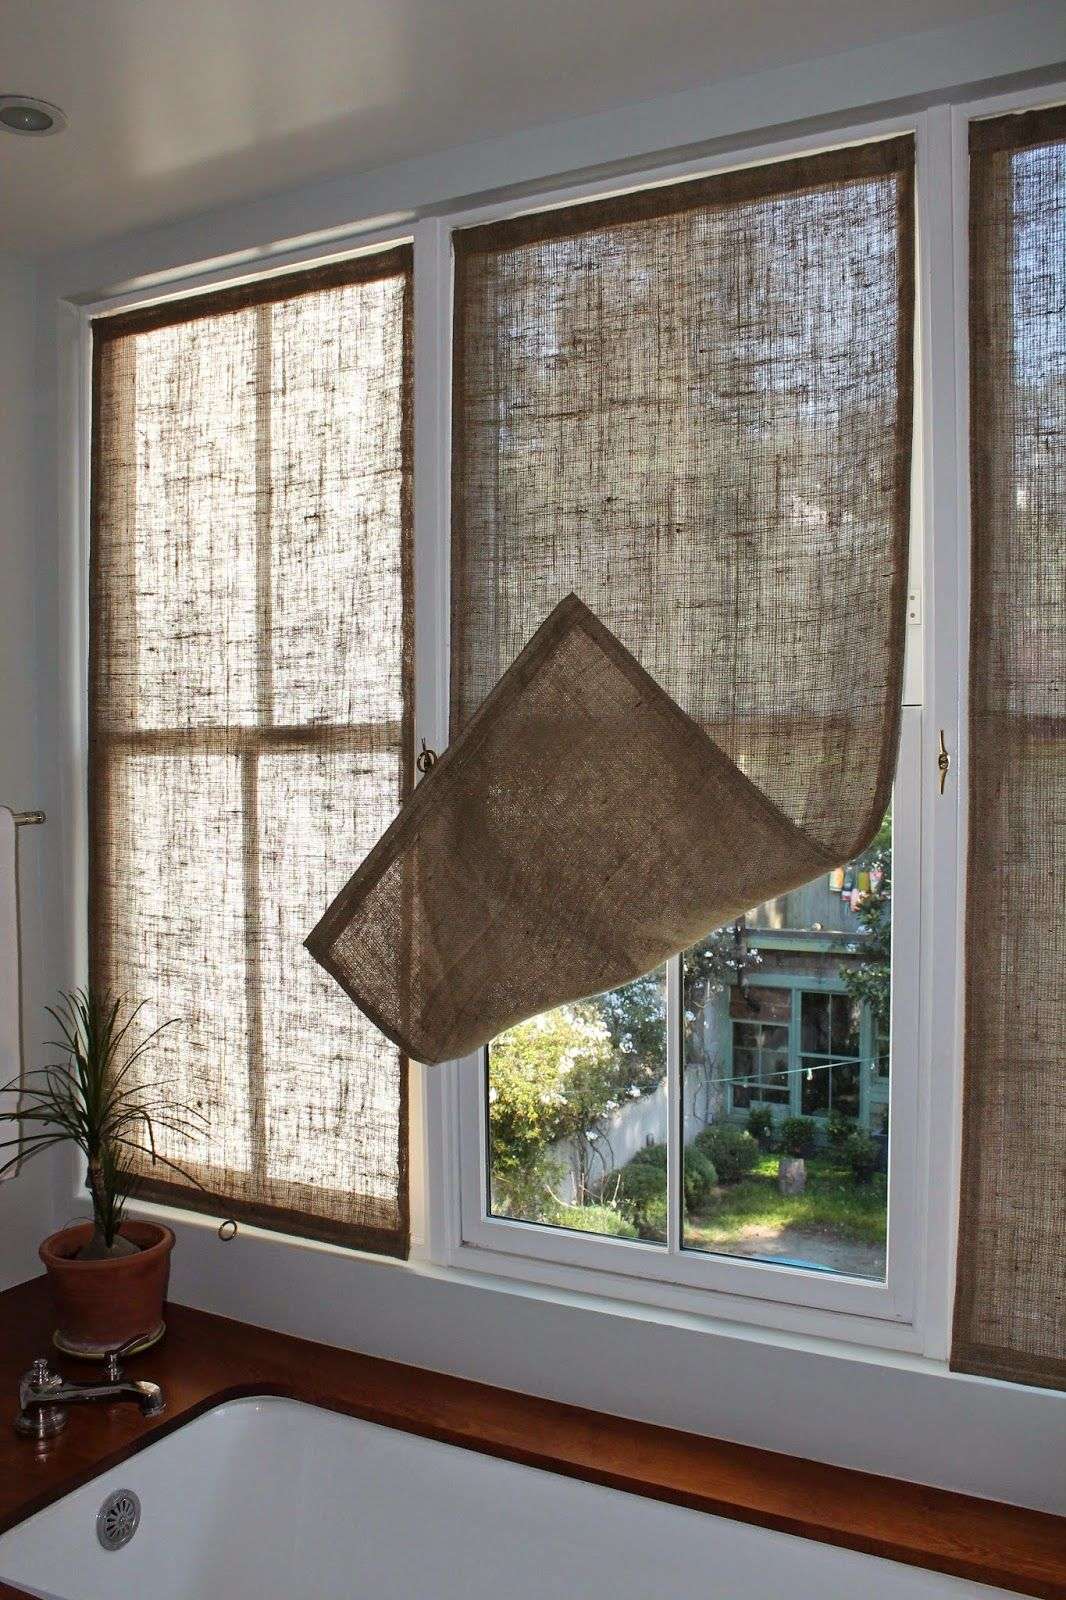 Elegant Last Week I Made Some New Burlap Window Coverings For The Master Bathroom.  I Made